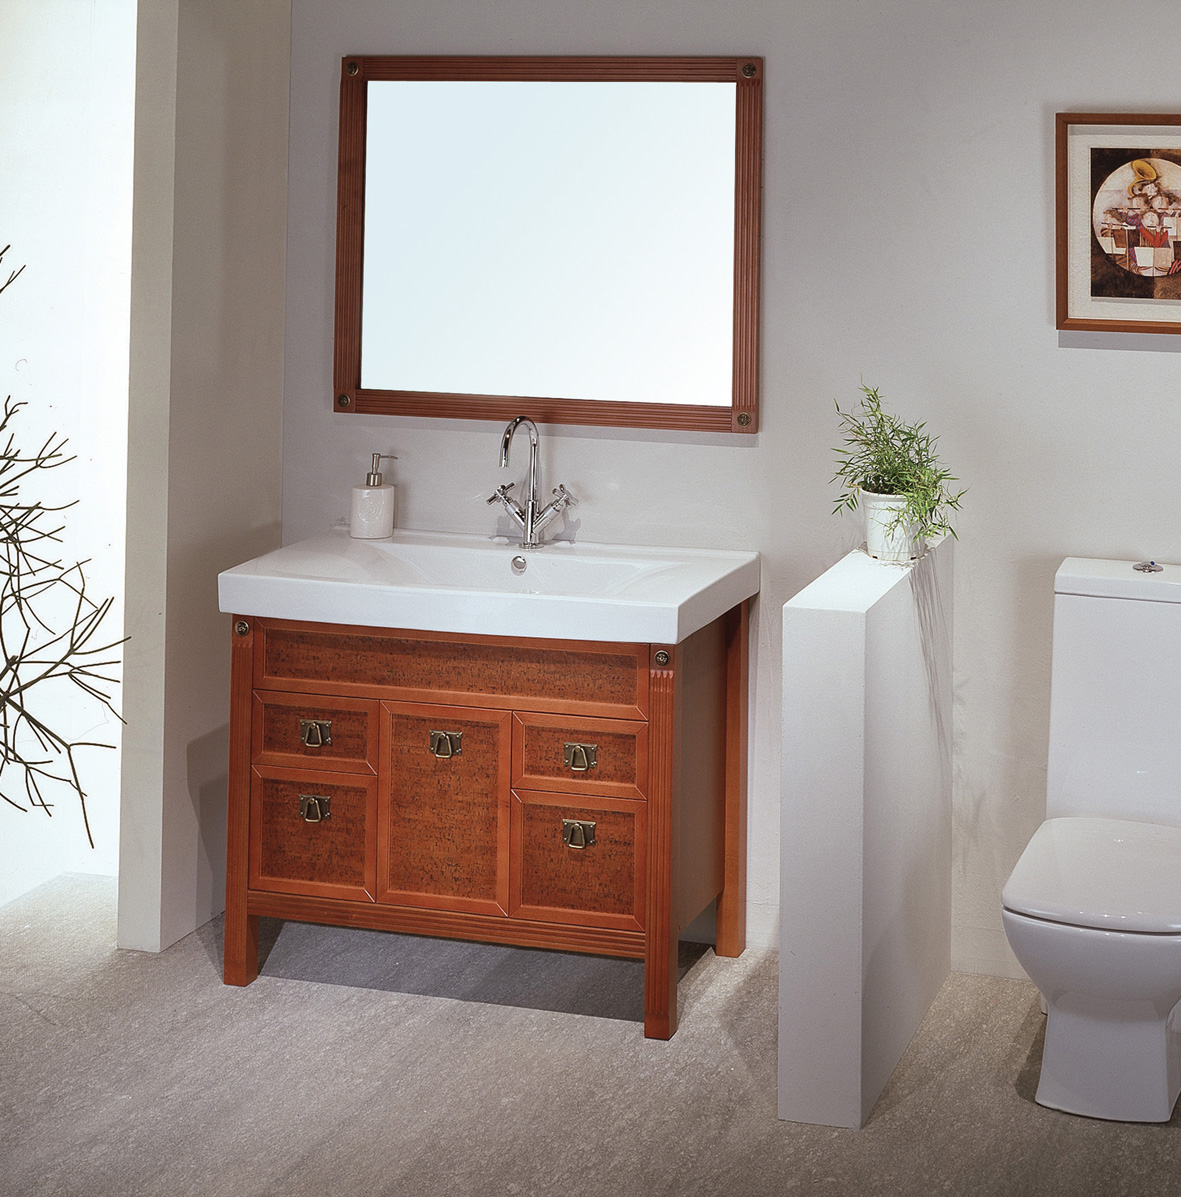 Image of: Ikea Double Vanity Teak